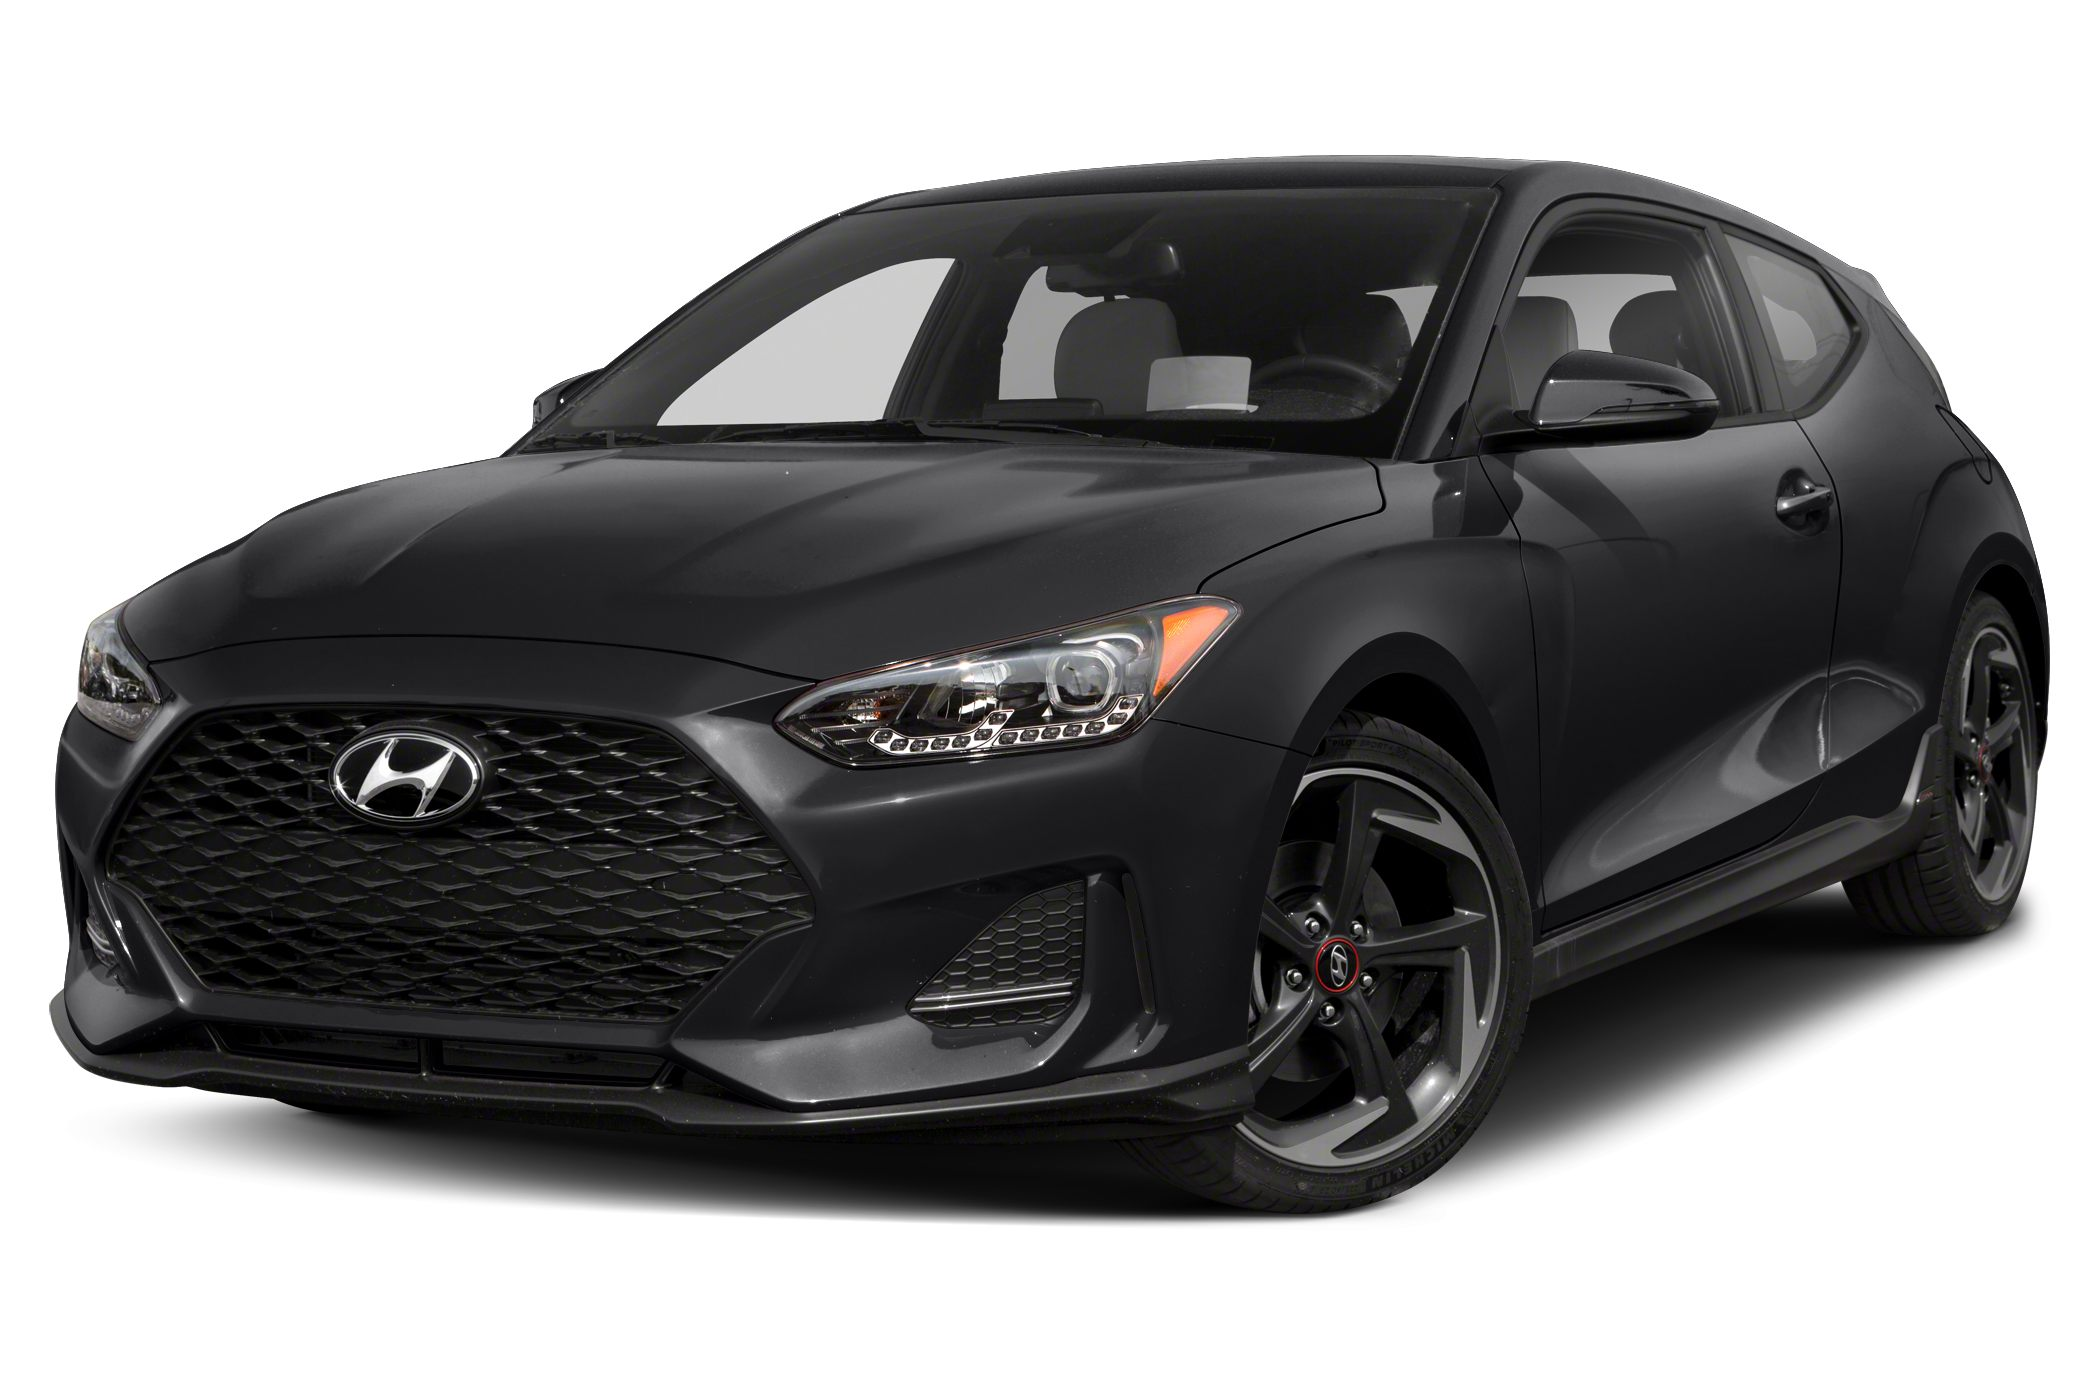 2020 Hyundai Veloster Turbo Wallpaper